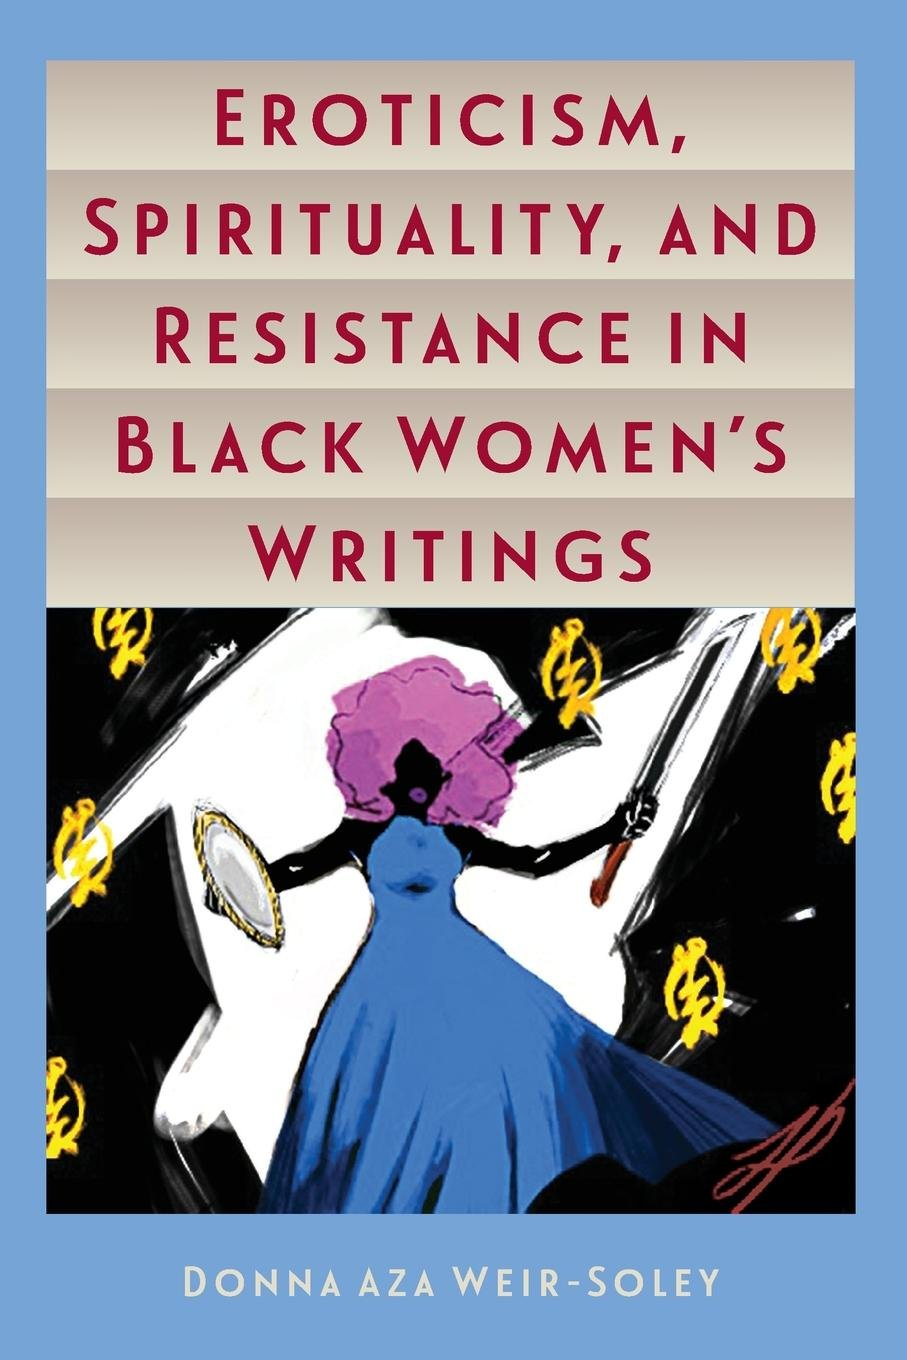 Eroticism, Spirituality, and Resistance in Black Women's Writings Paperback  – June 21, 2017